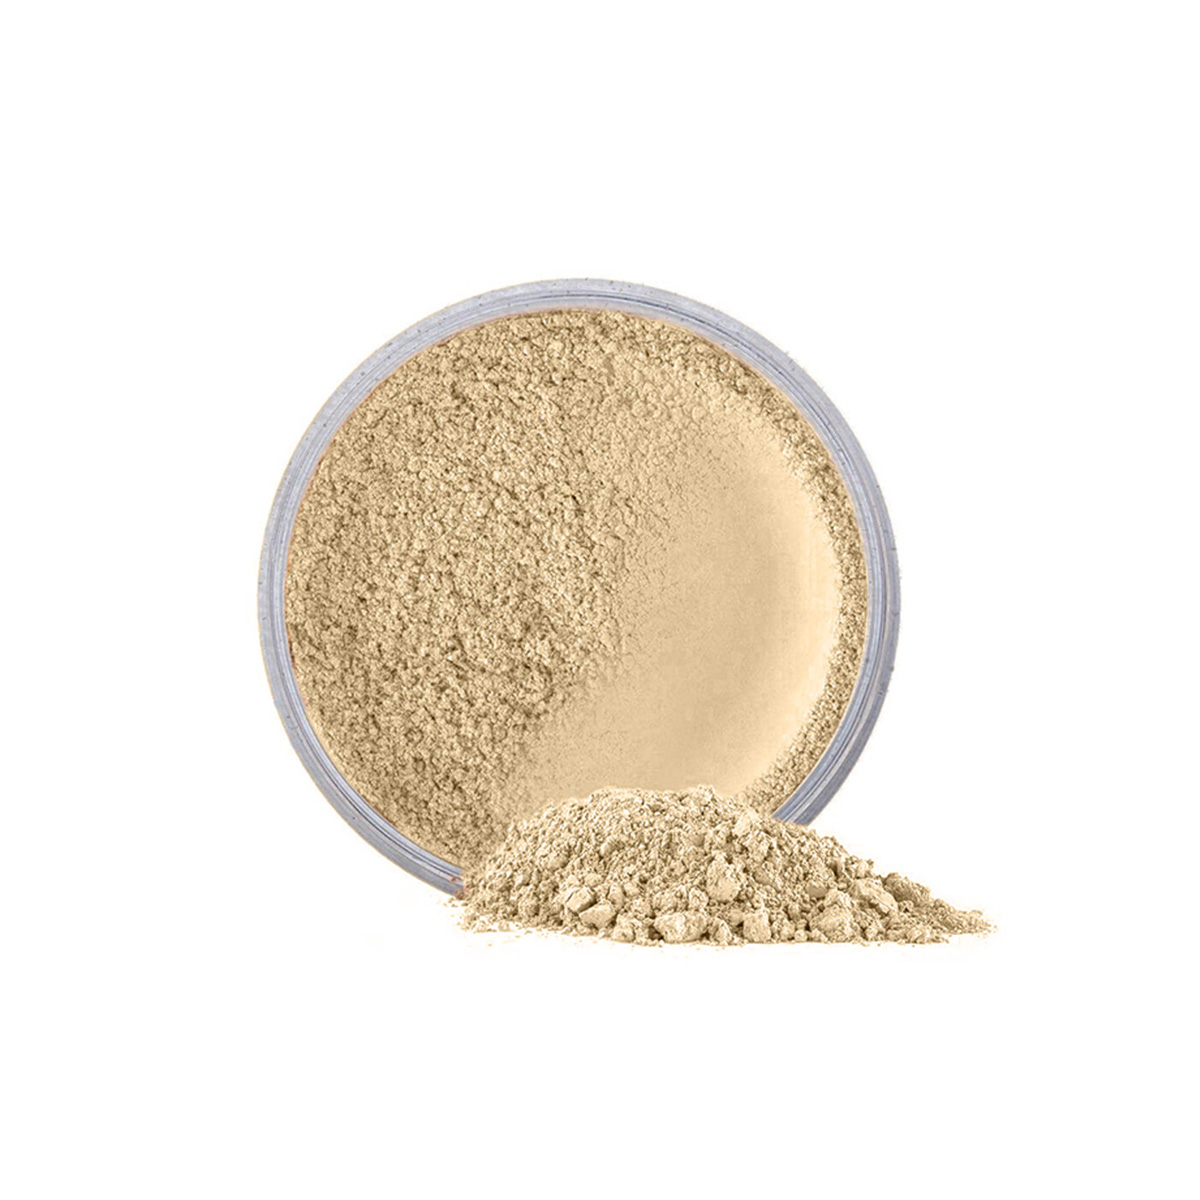 yccollection.net - LOOSE SETTING POWDER